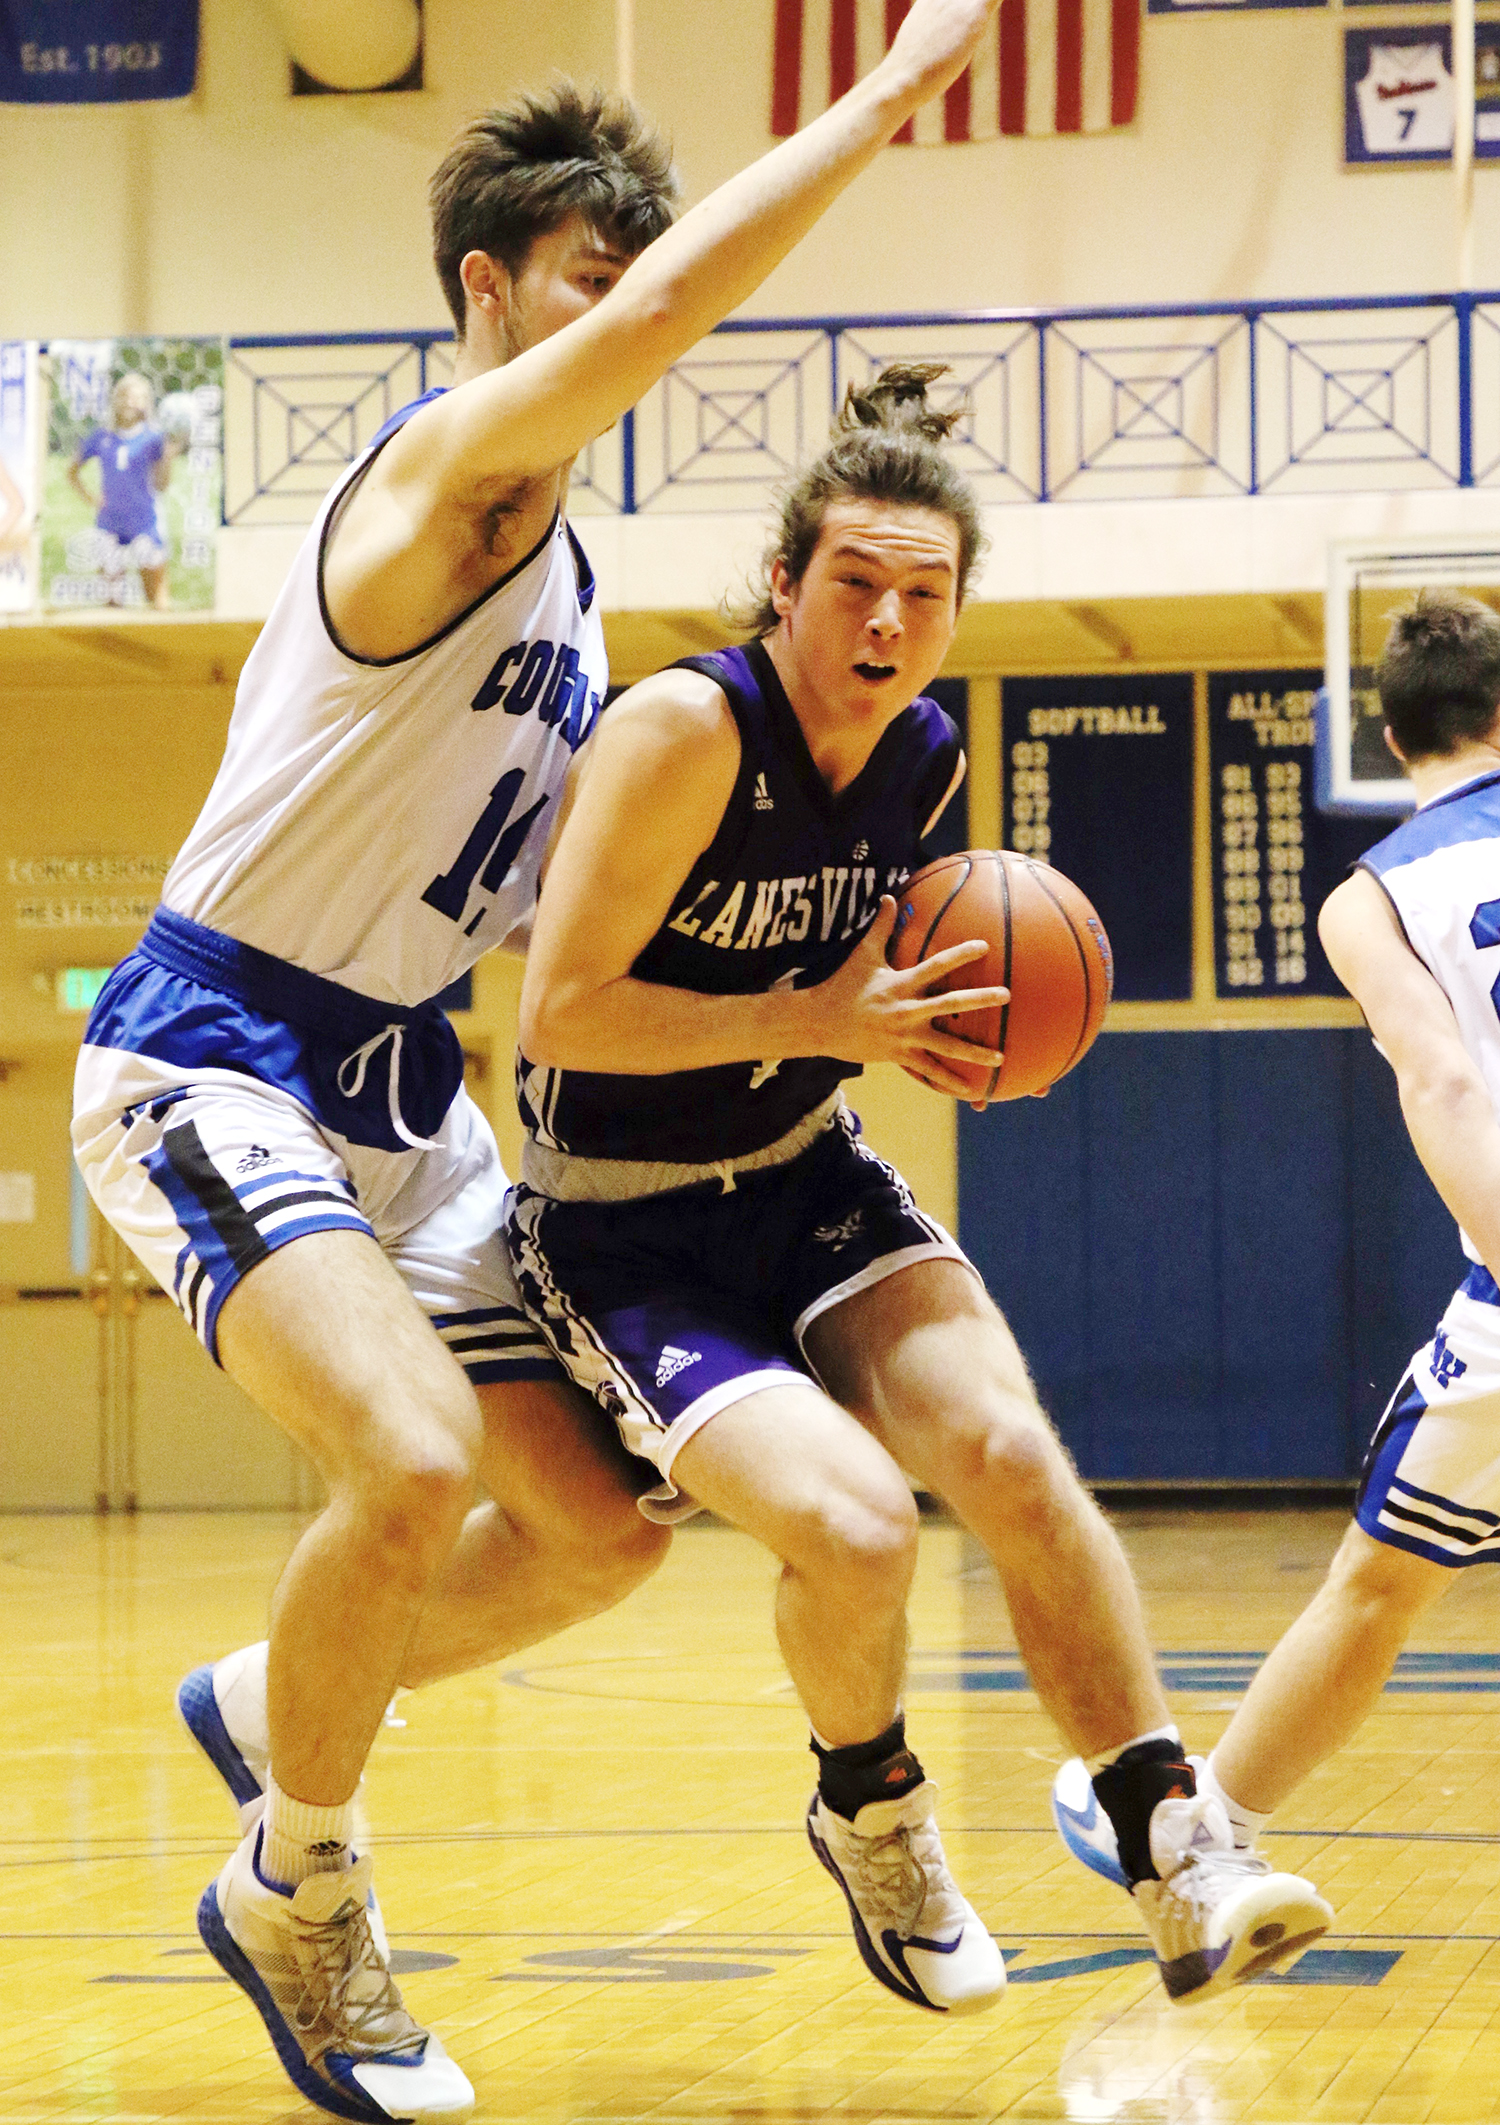 Cougars clip Eagles behind Hatton's 29